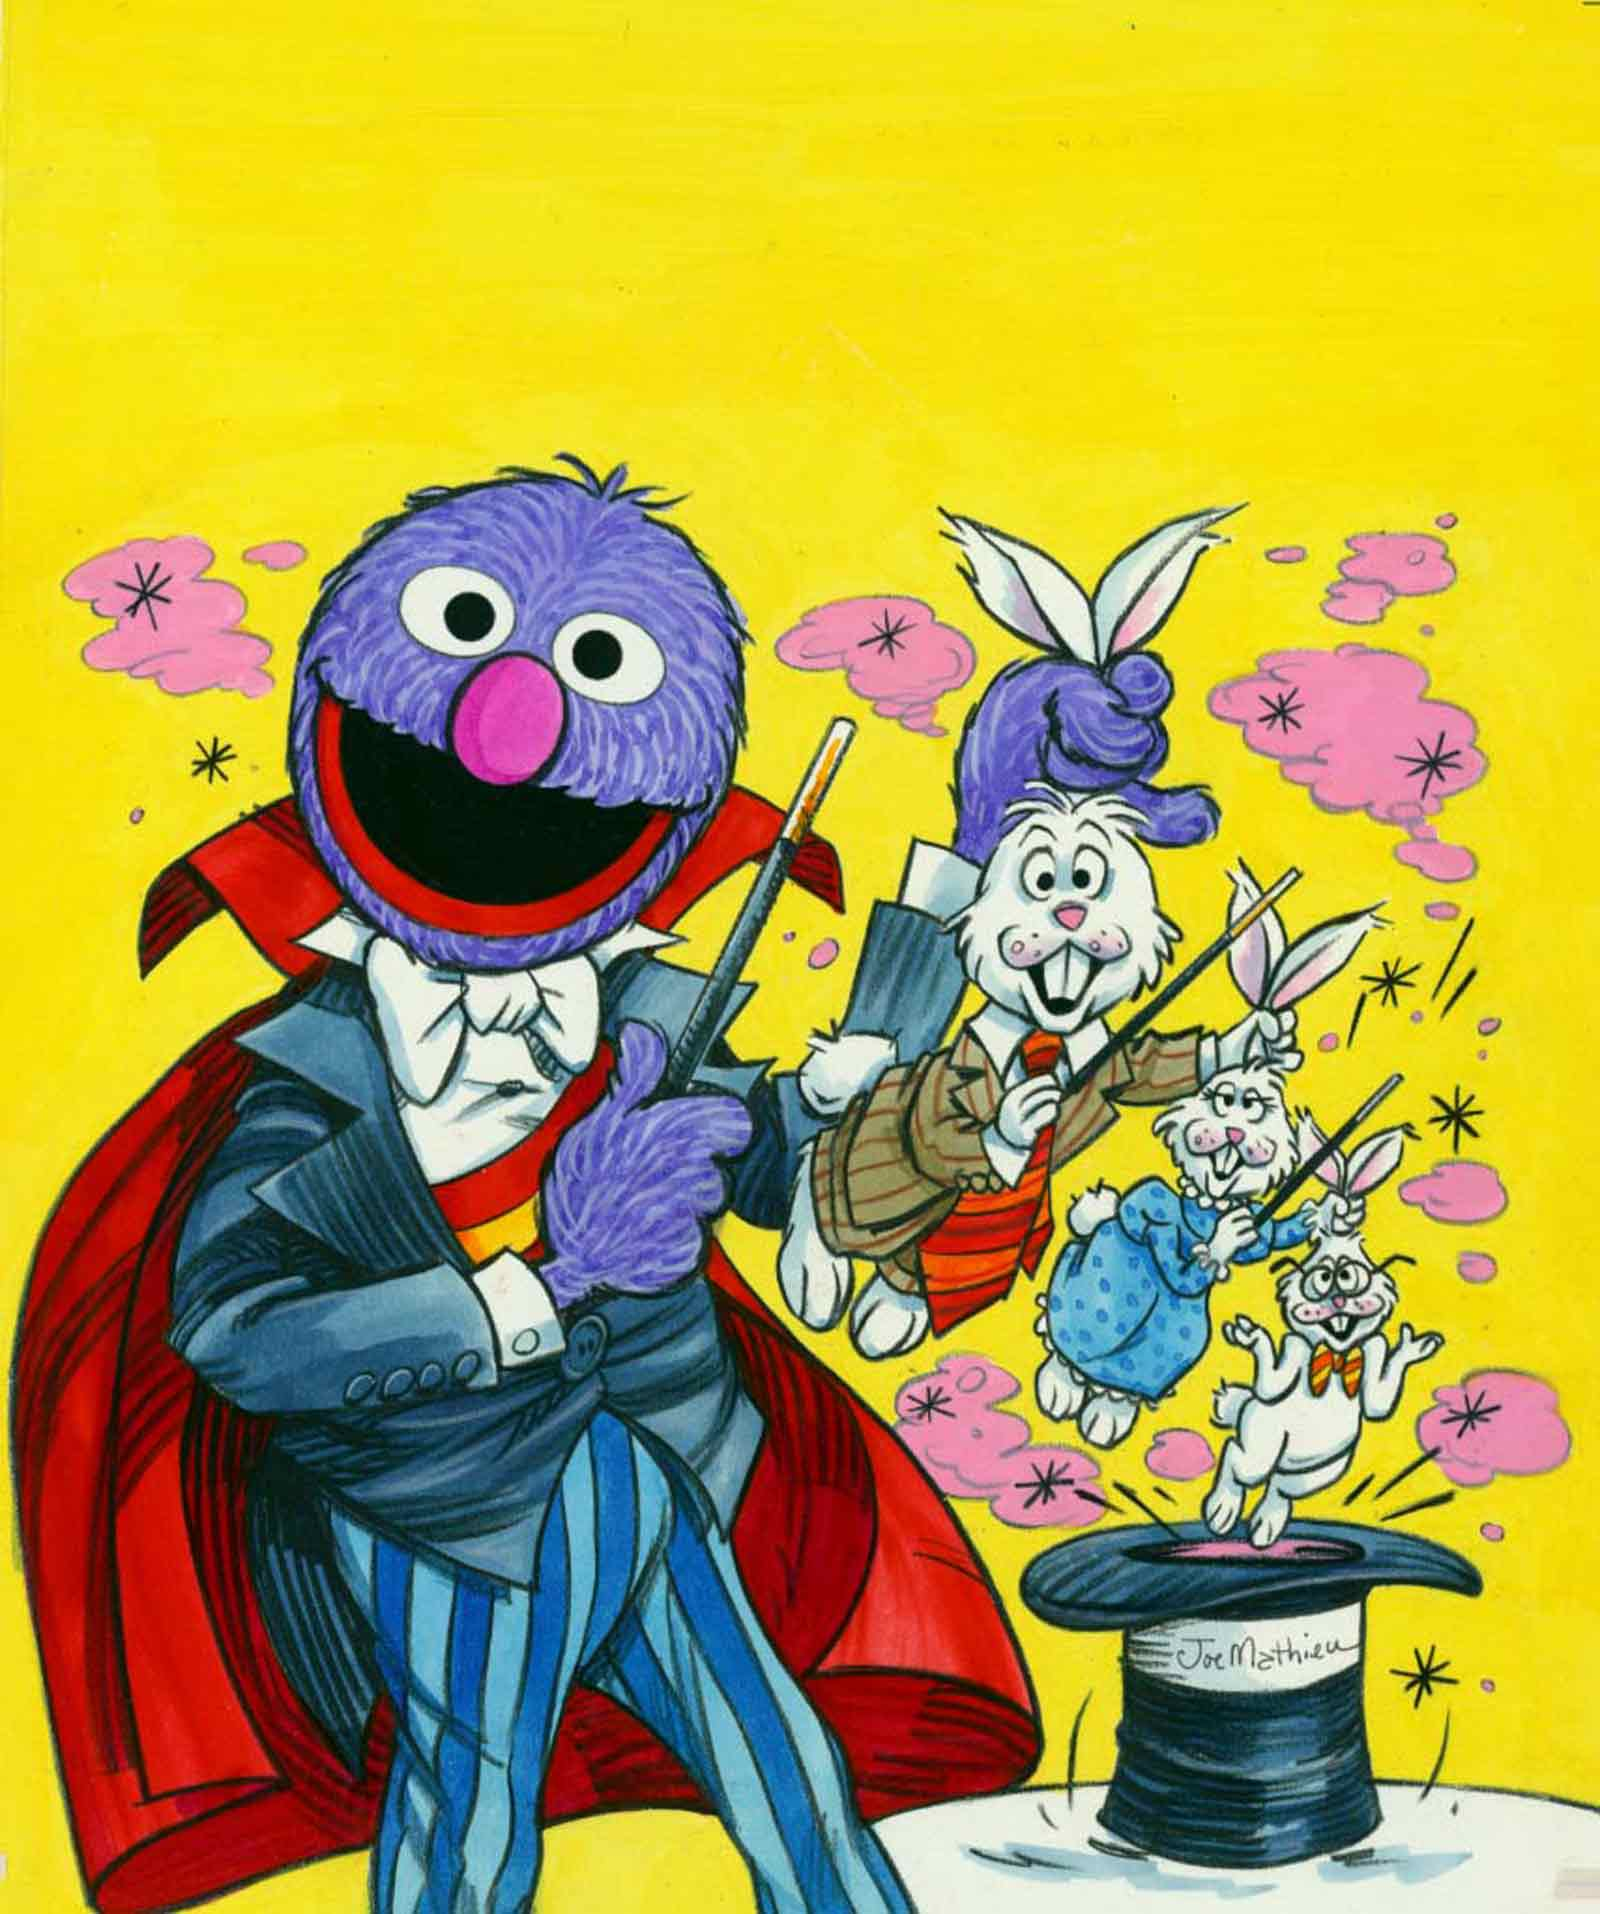 Grover the Magician